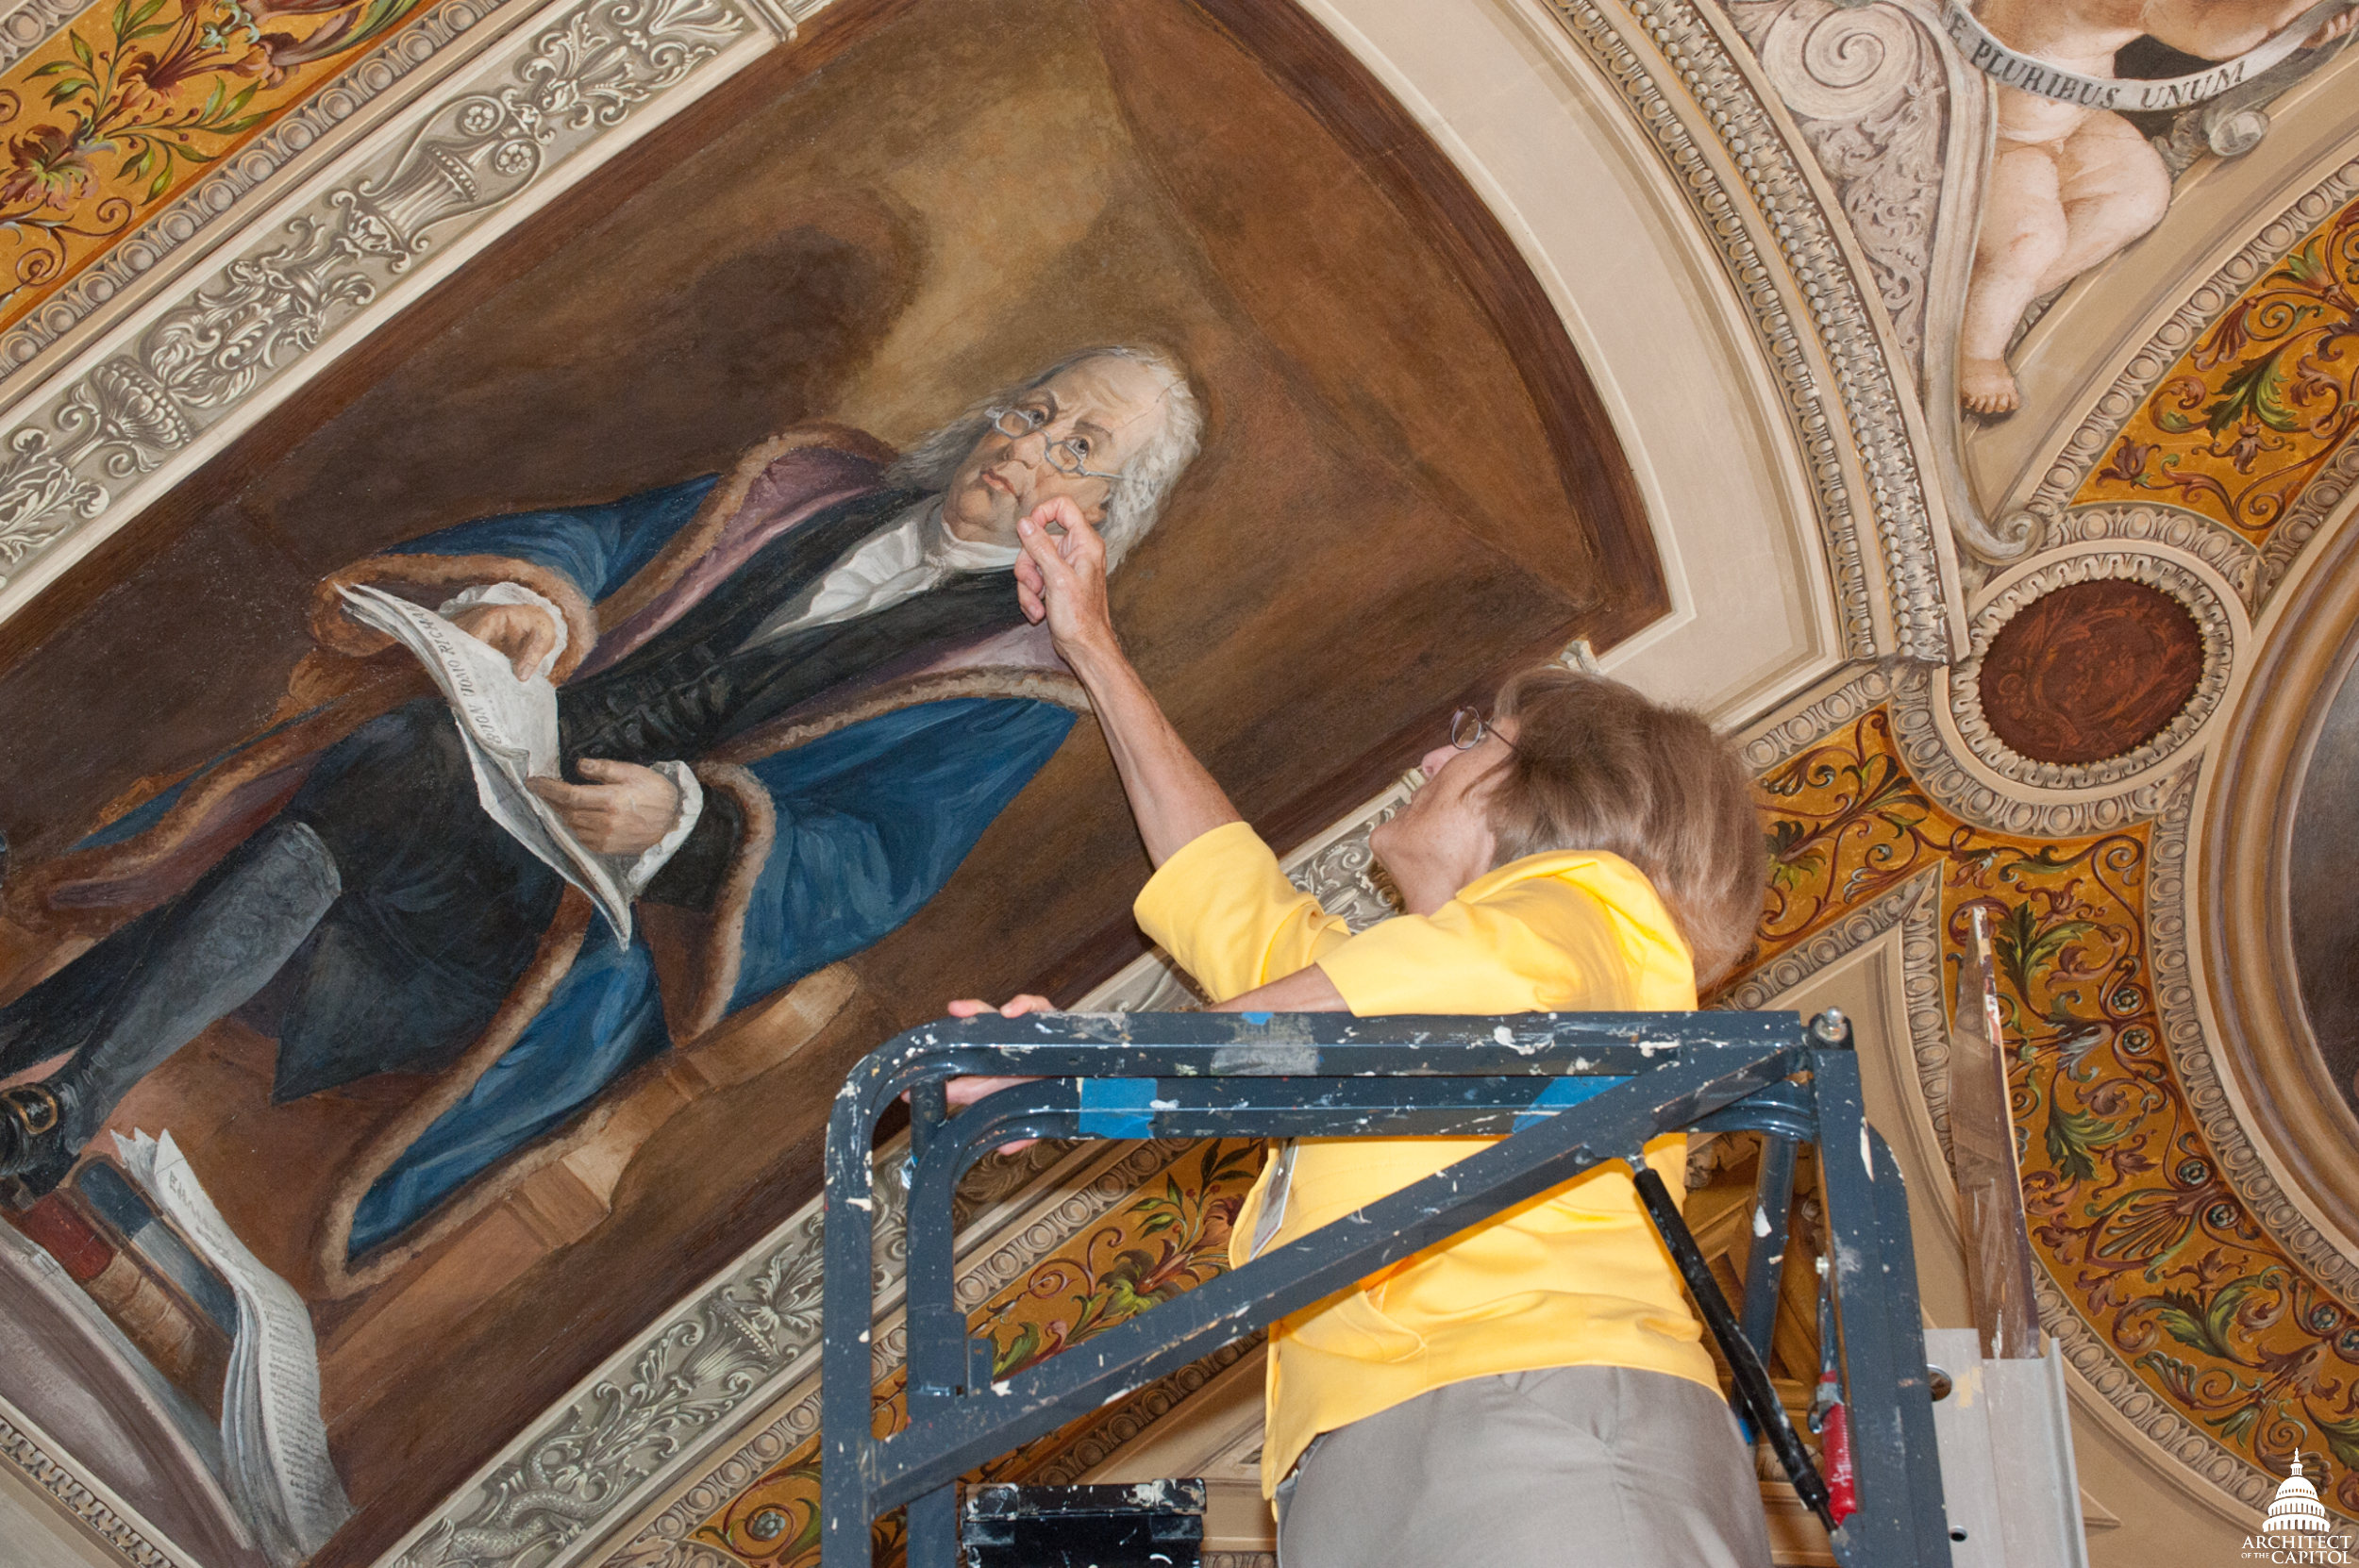 Dr. Barbara Wolanin examines a painting of Benjamin Franklin.